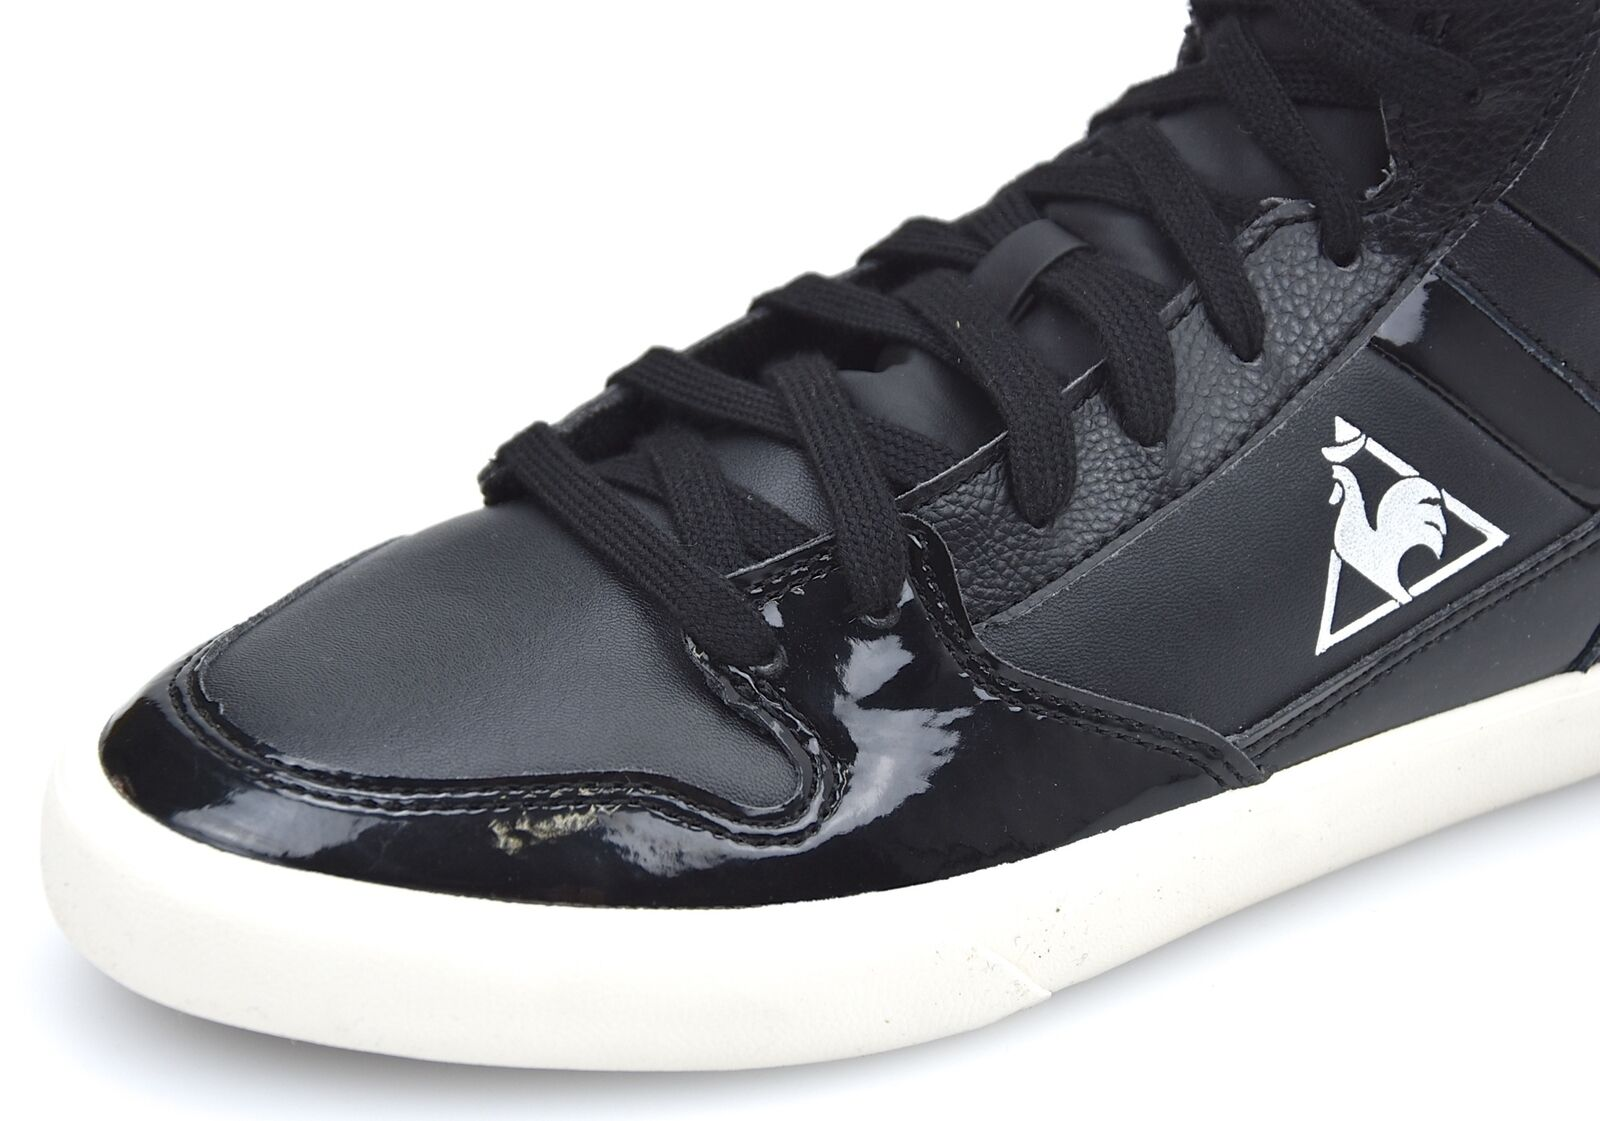 Adidas Superstar Pintura Le Coq Sportif Man Sneaker Shoes Casual Free Time Time Time